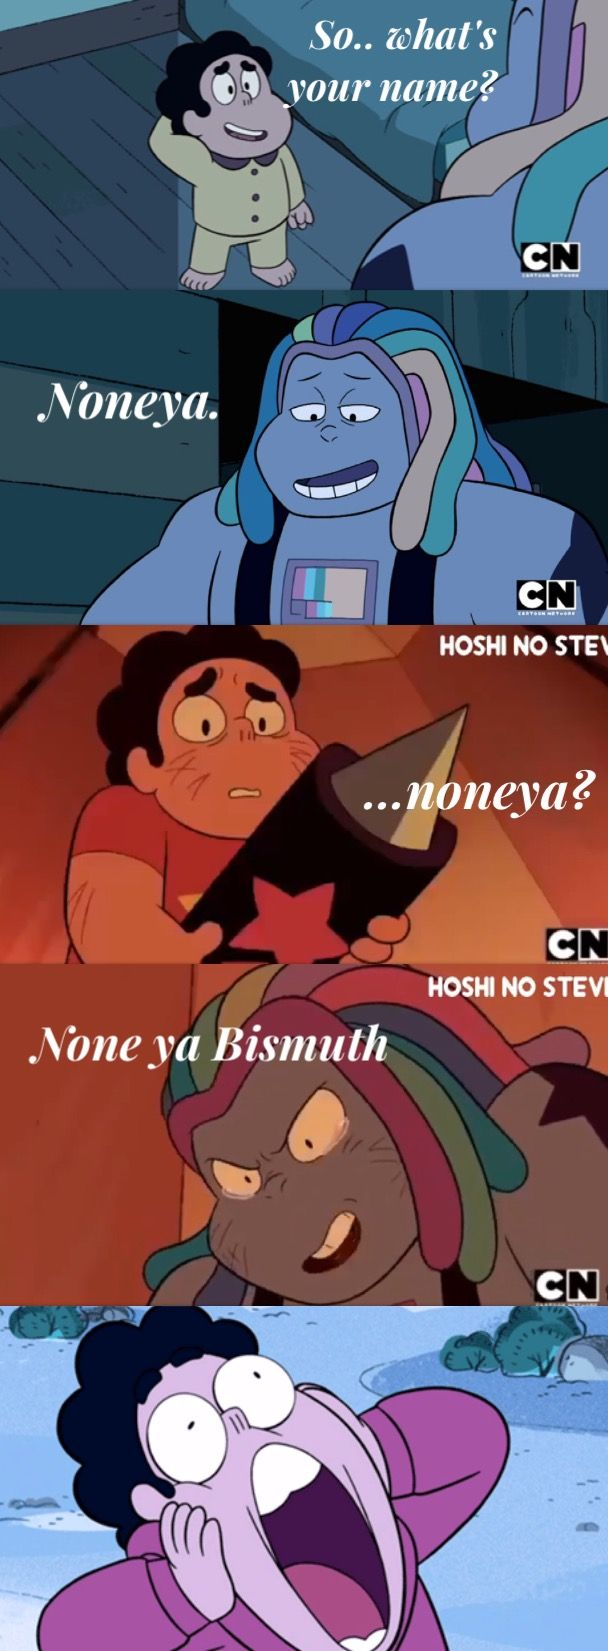 2319 best steven universe images on pinterest | universe, animated